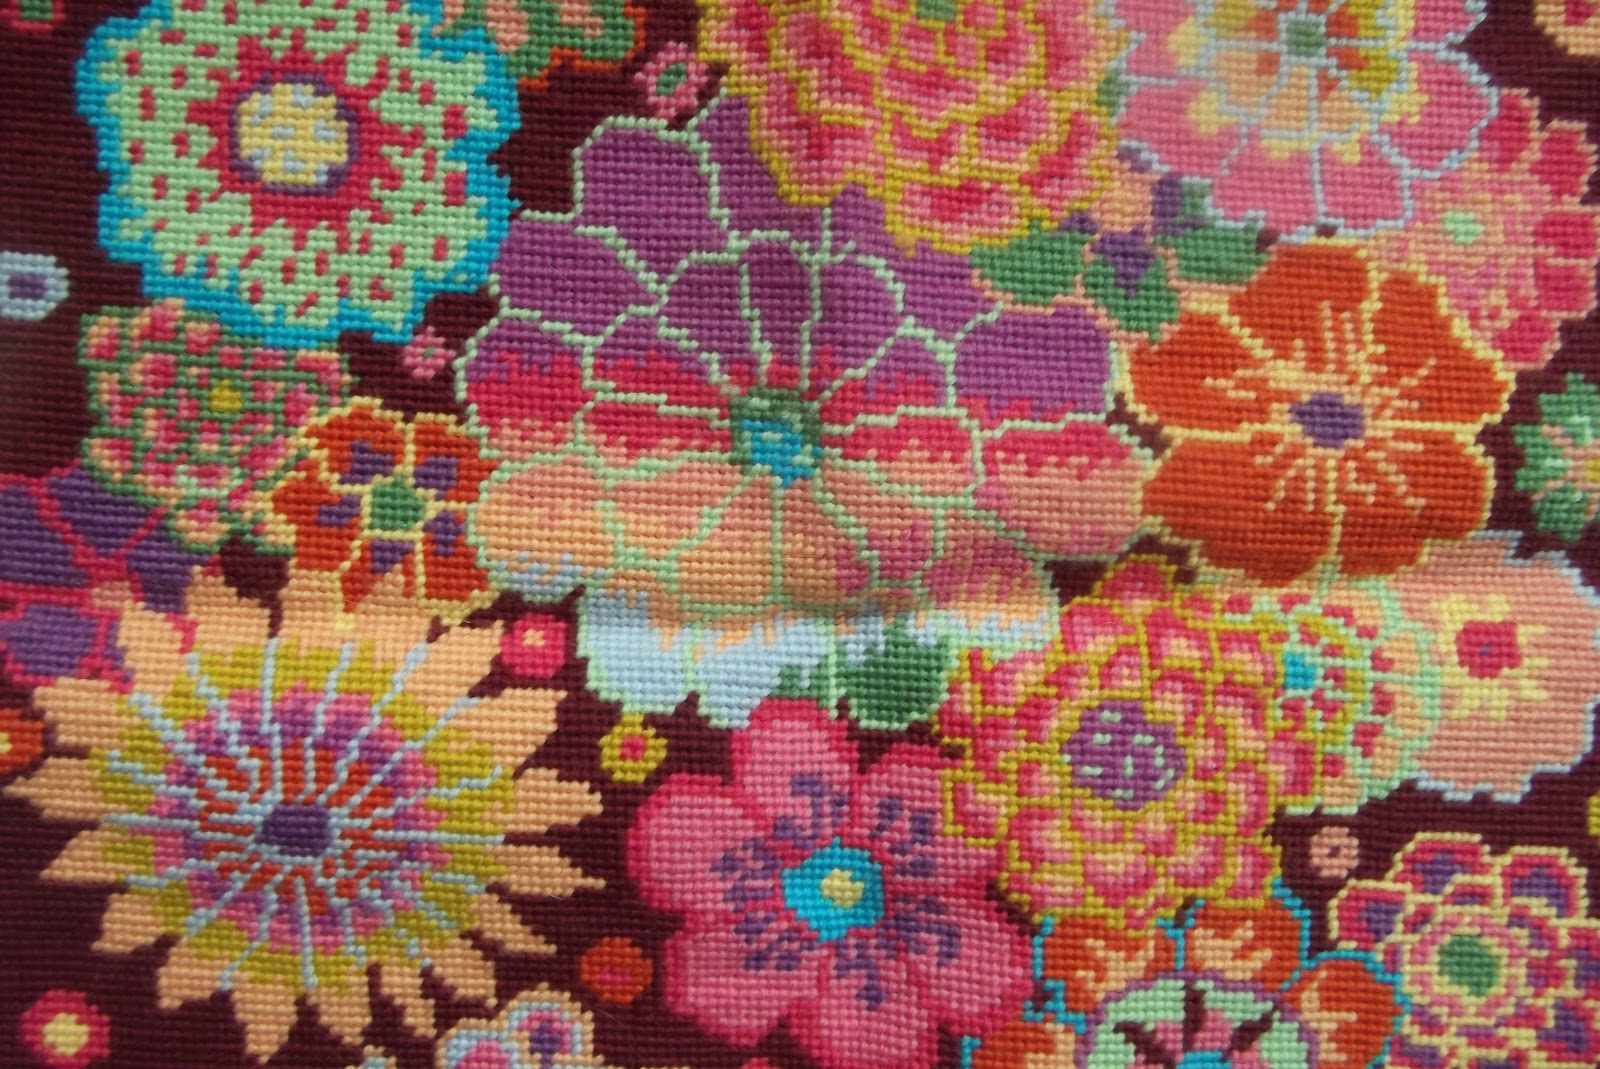 crafty-cats-corner: EHRMAN TAPESTRY AND MORE TATTING